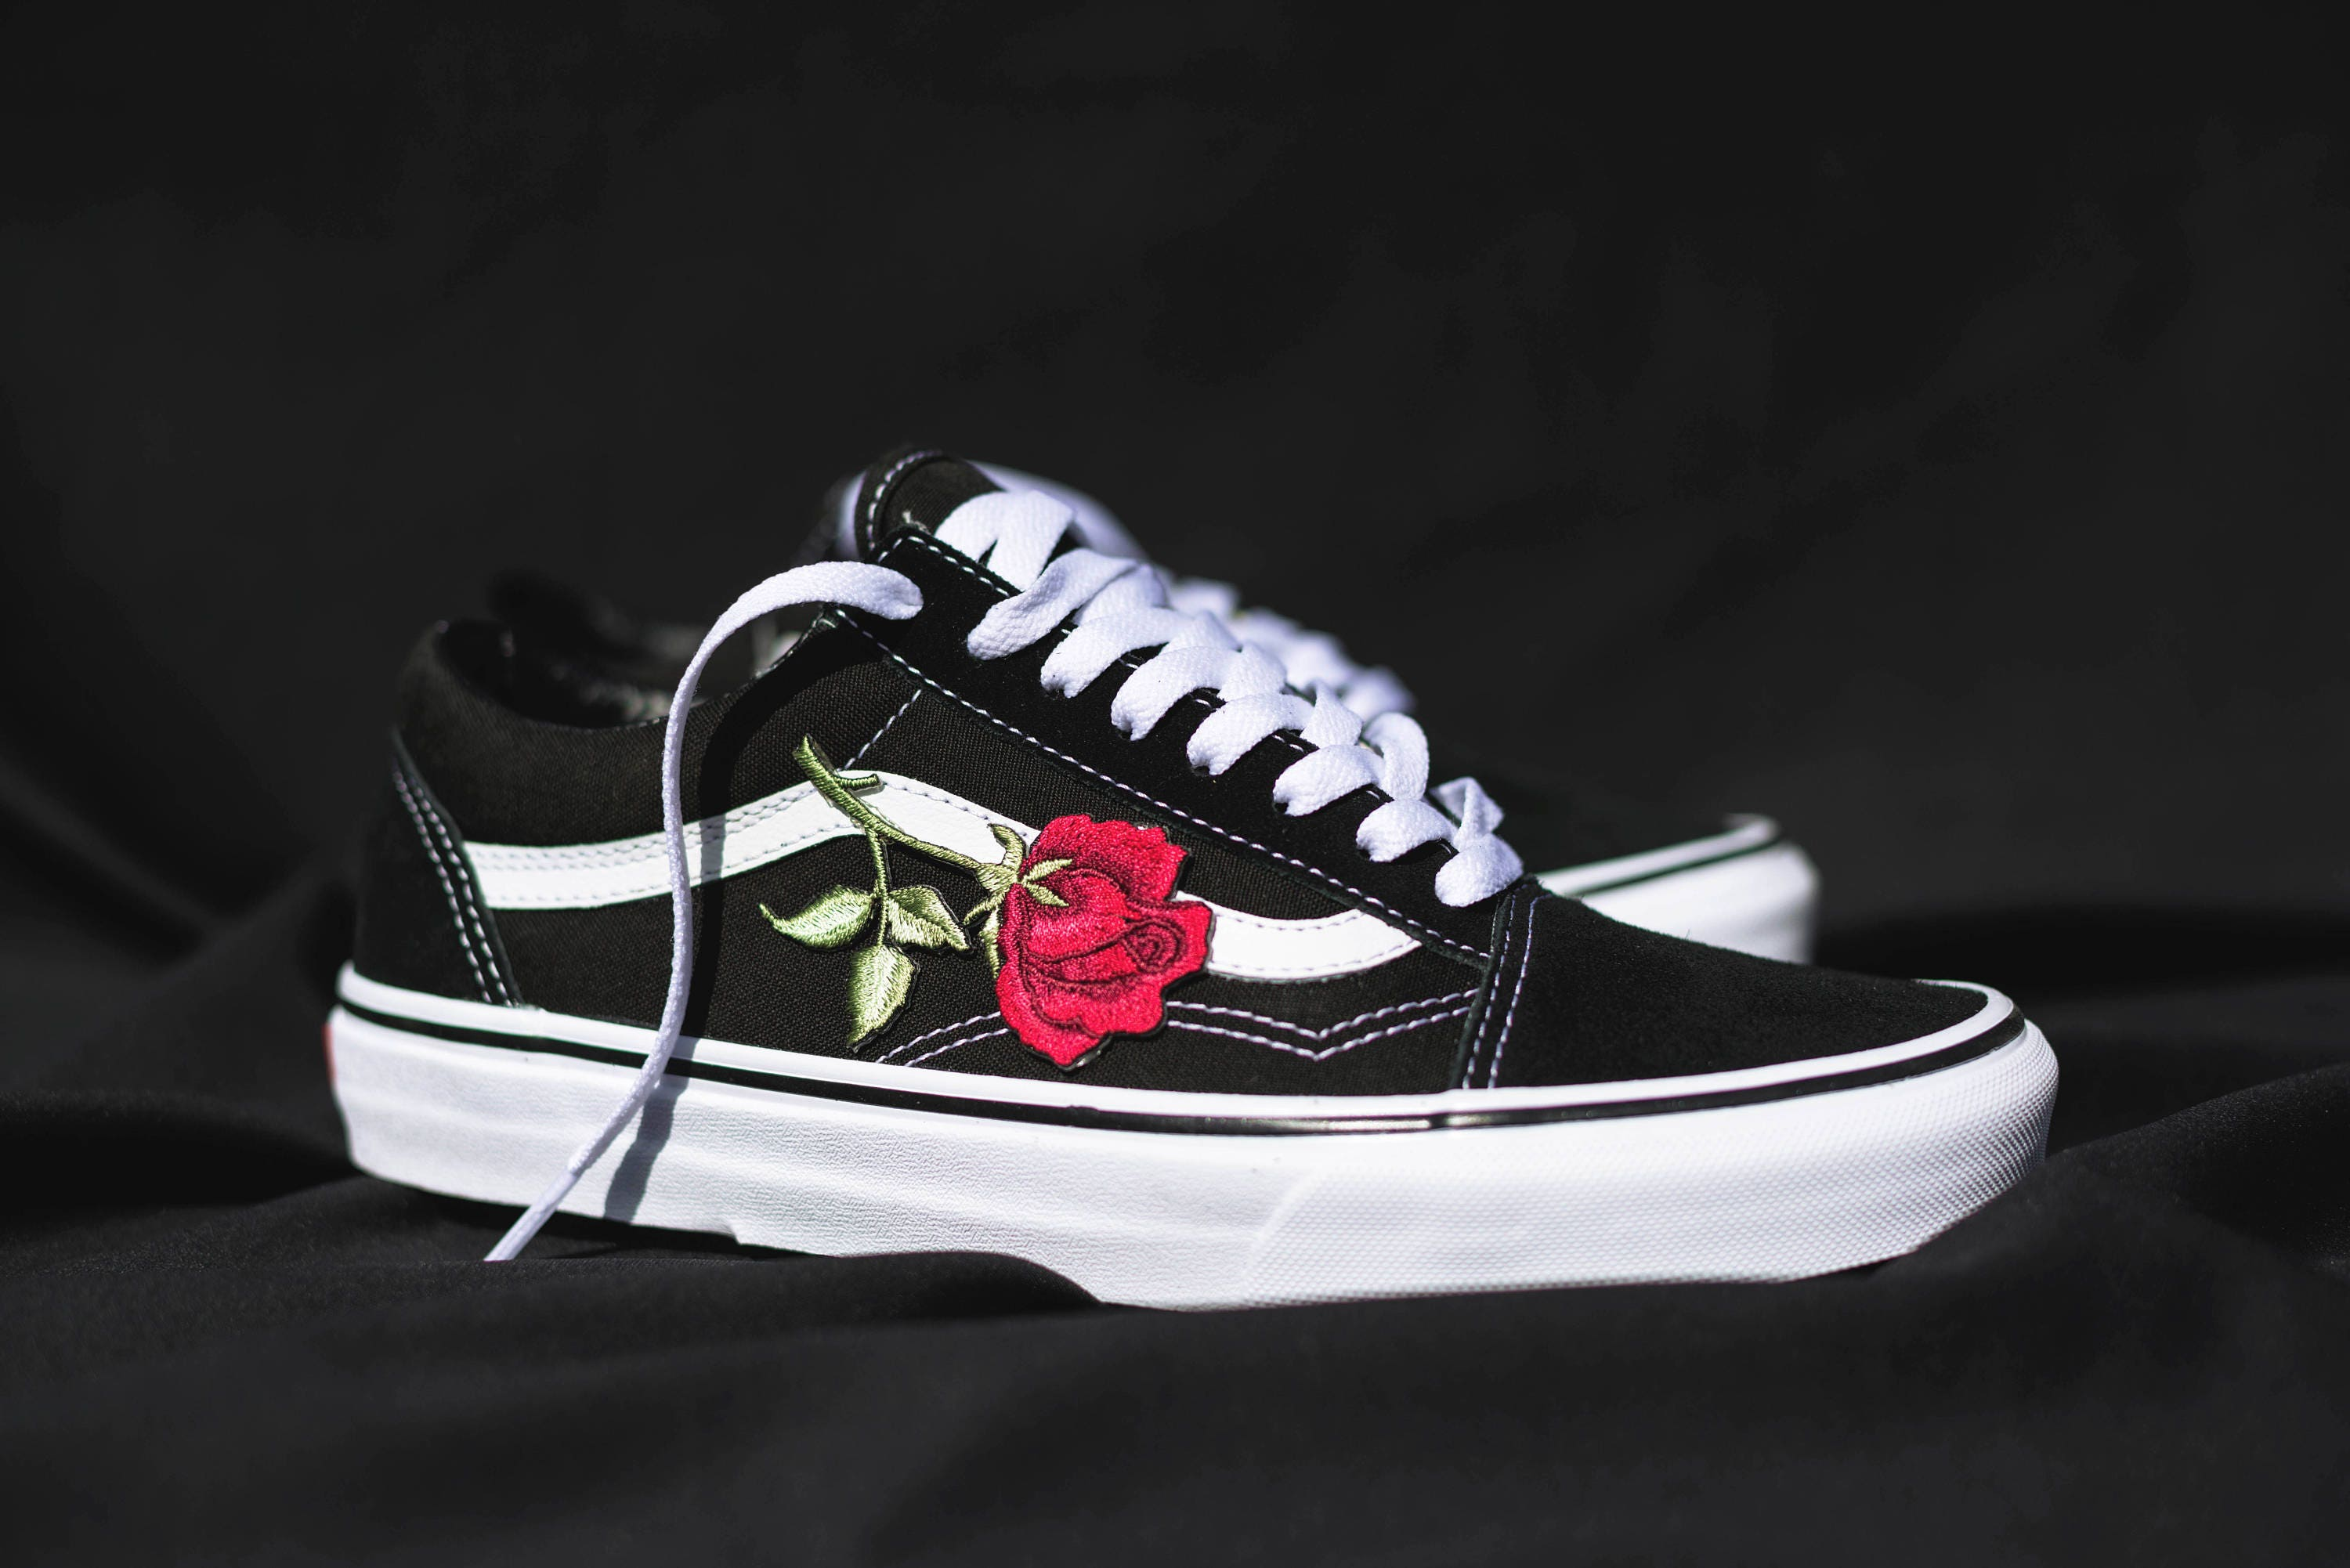 Vans Old Skool Custom Big Rose Patch EUR 34.5 ... online  Custom gucci ... 30fd90834